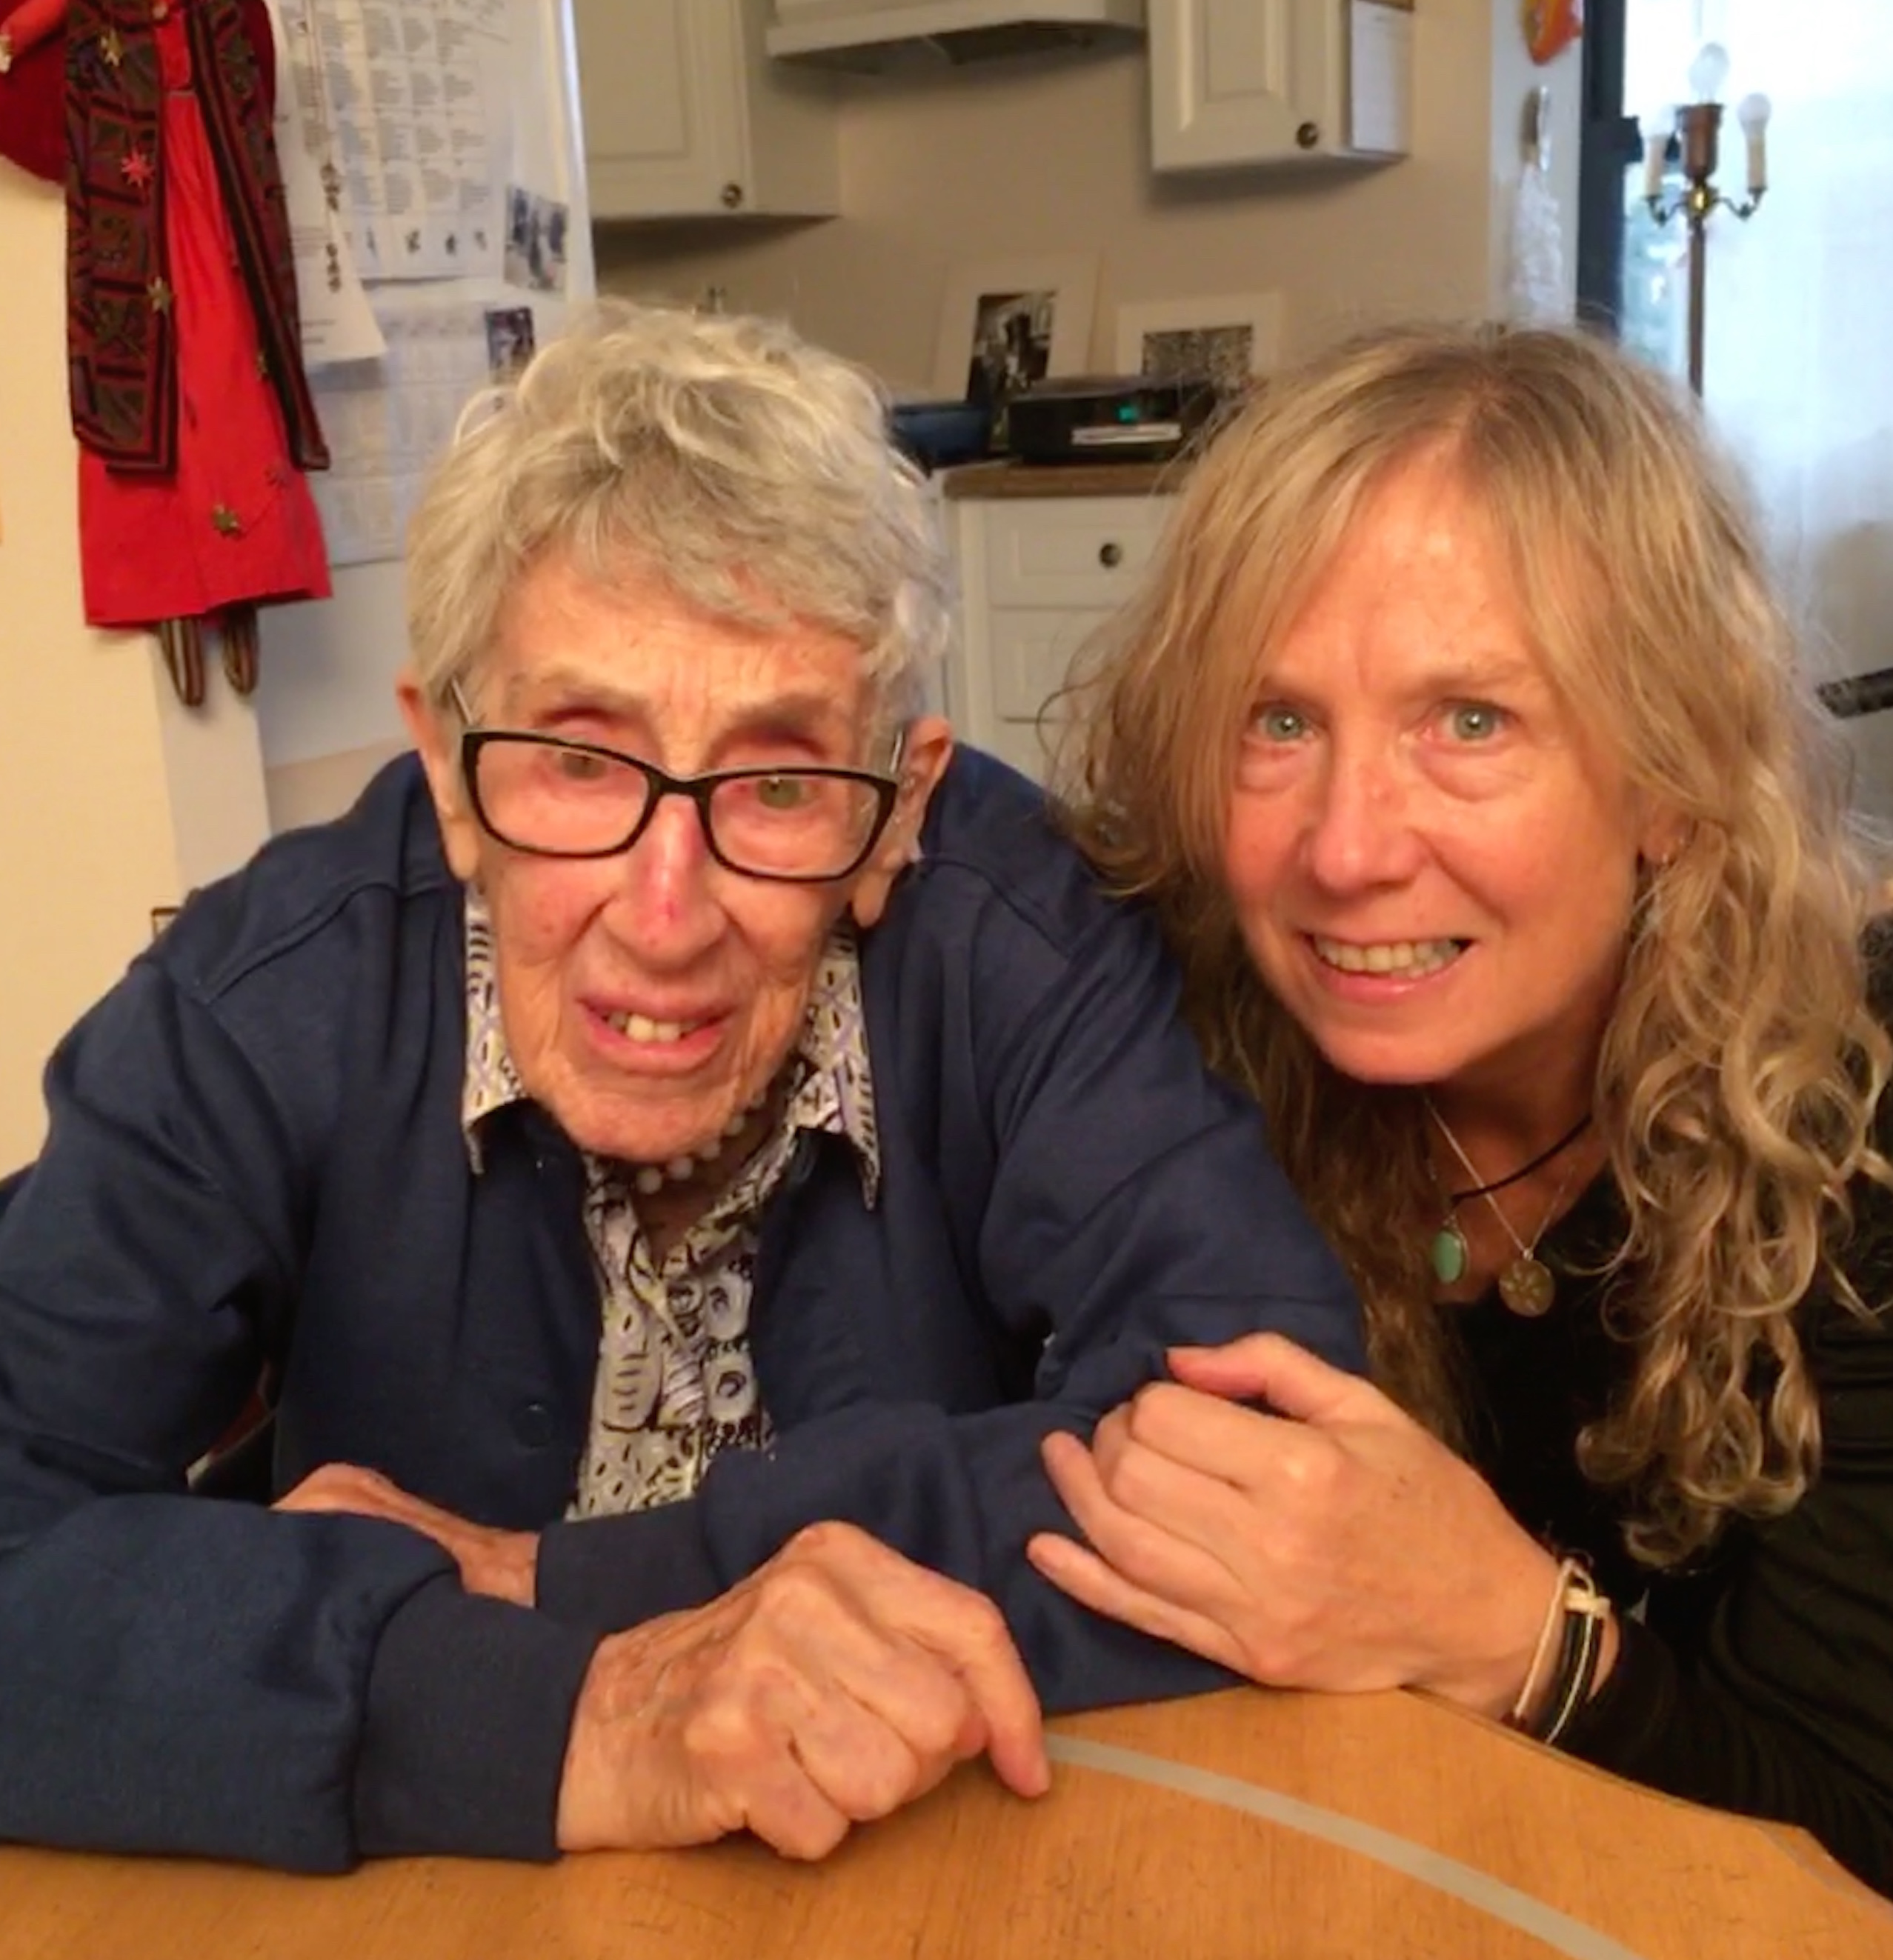 Peggy Lipschutz & Peggy Browning